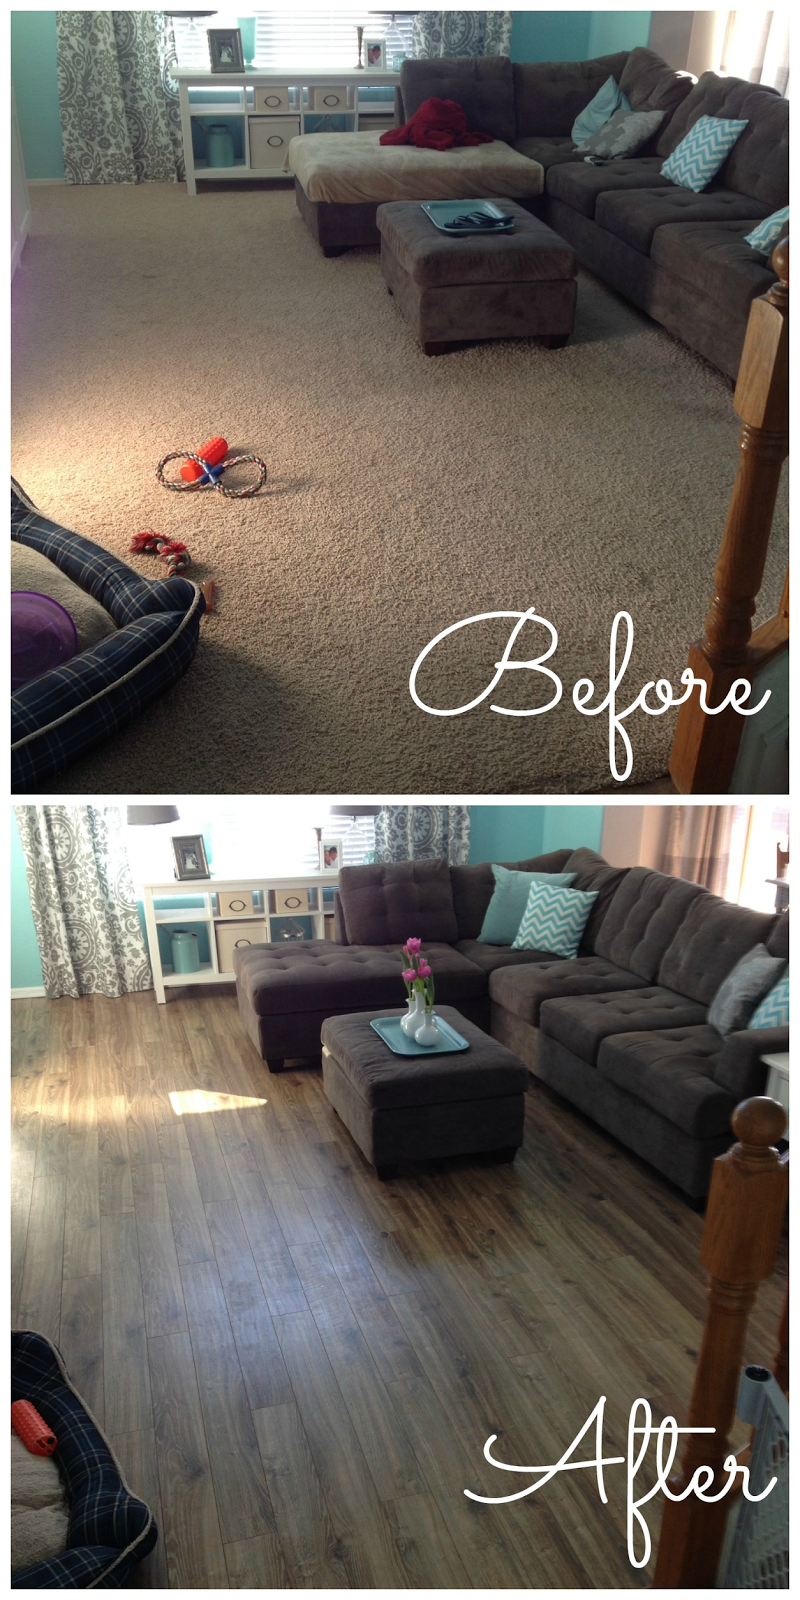 Out with the old, in with the new! | Living room wood ...